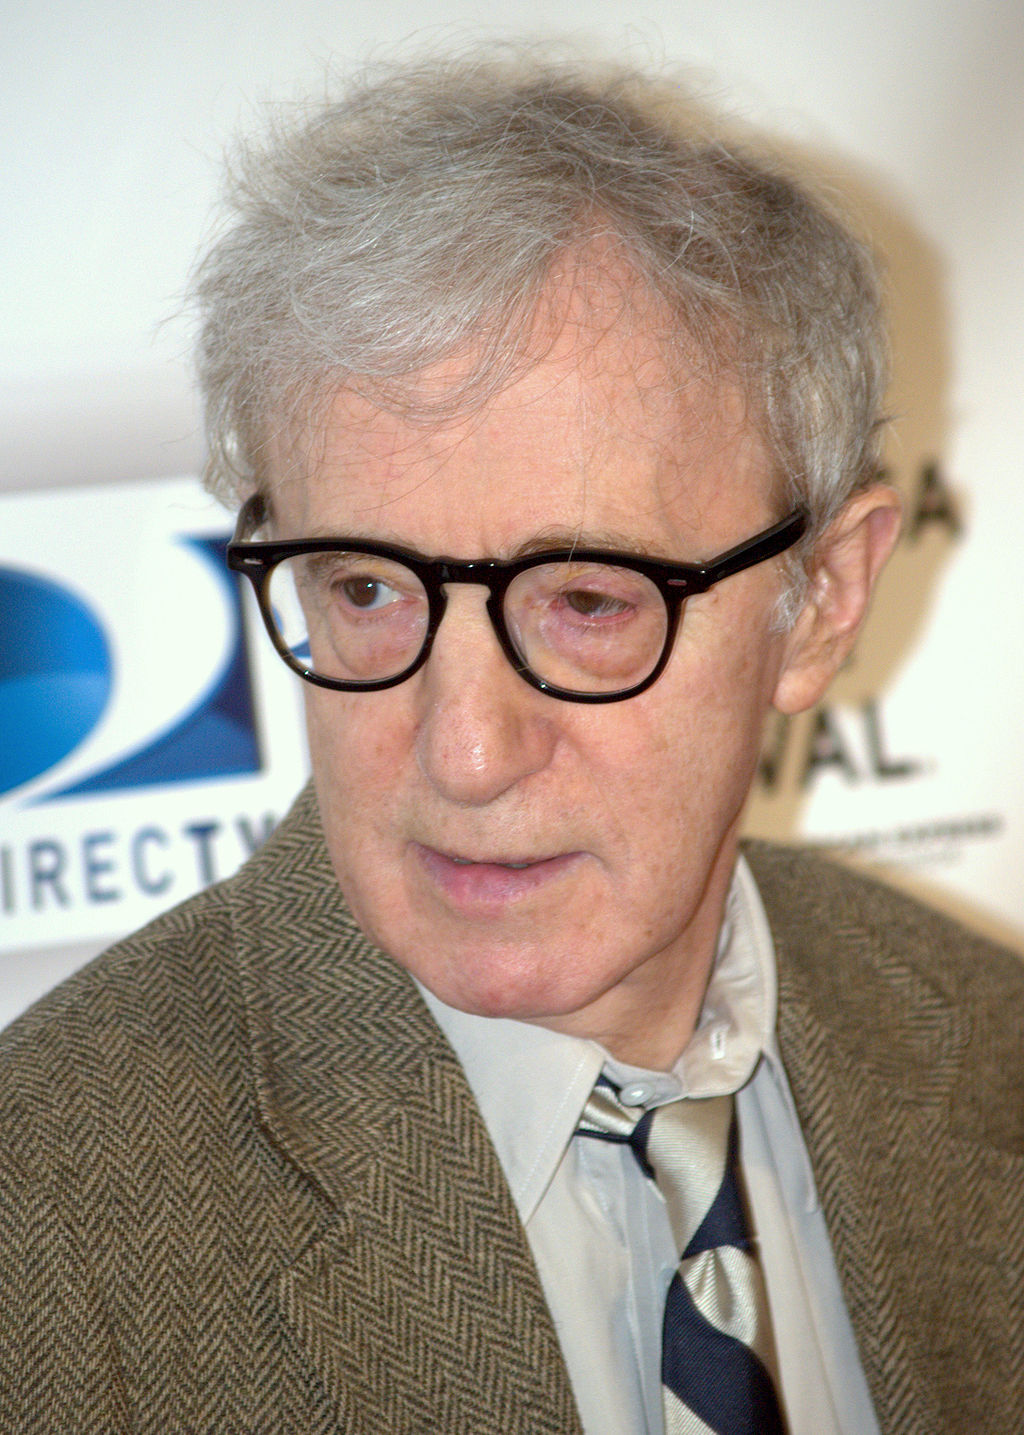 /upload.wikimedia.org/wikipedia/commons/thumb/0/0f/Woody_Allen_at_the_premiere_of_Whatever_Works.jpg/1024px-Woody_Allen_at_the_premiere_of_Whatever_Works.jpg